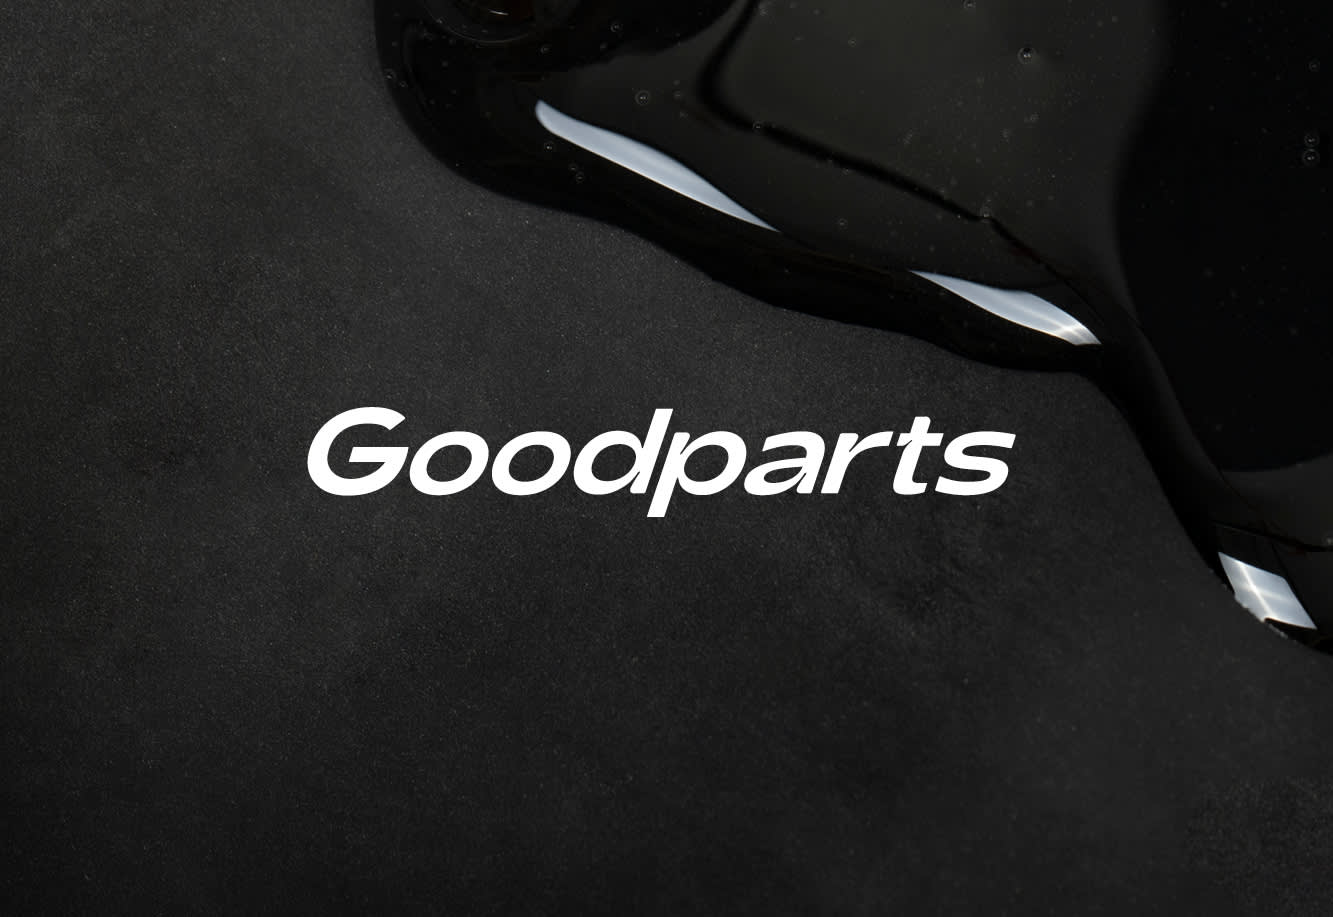 Goodparts, brand, packaging, and digital